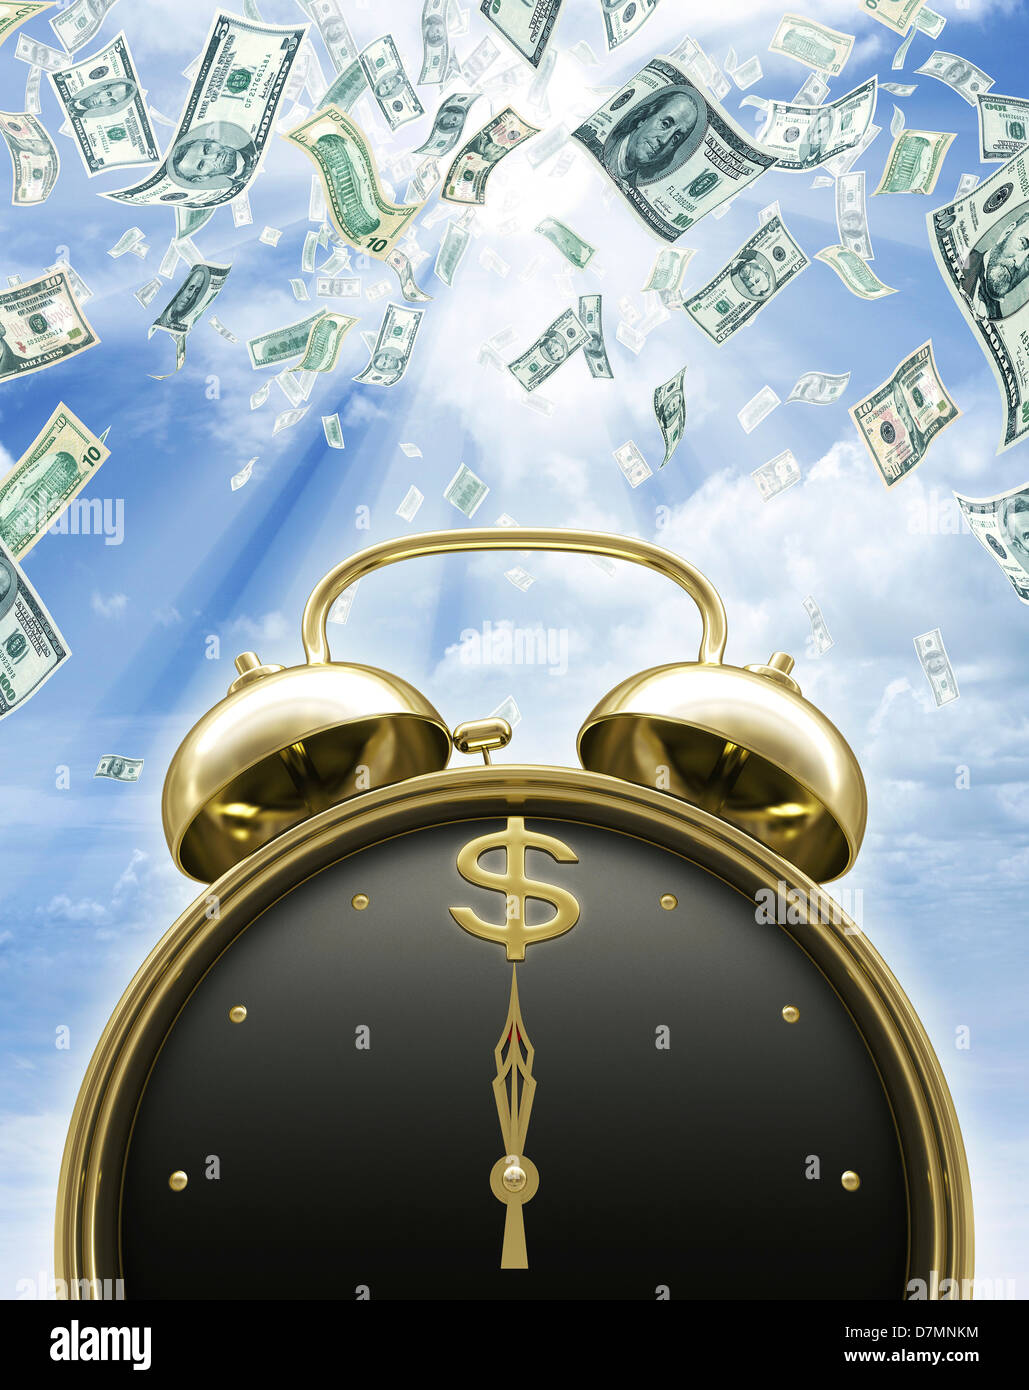 Time is money, conceptual artwork - Stock Image